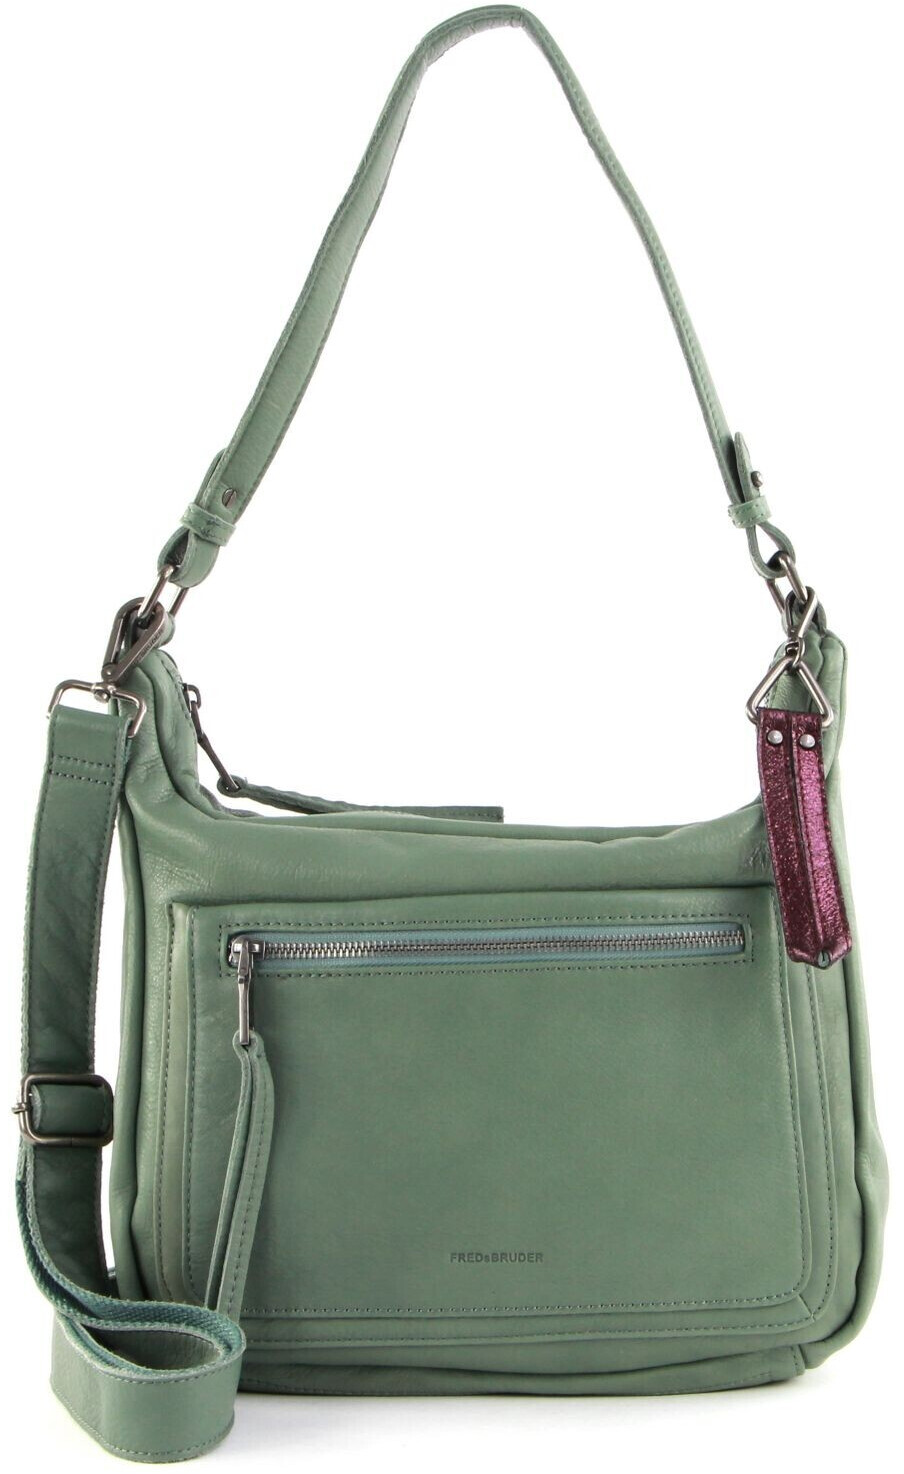 FredsBruder Utility Collection Always There Bag sea green